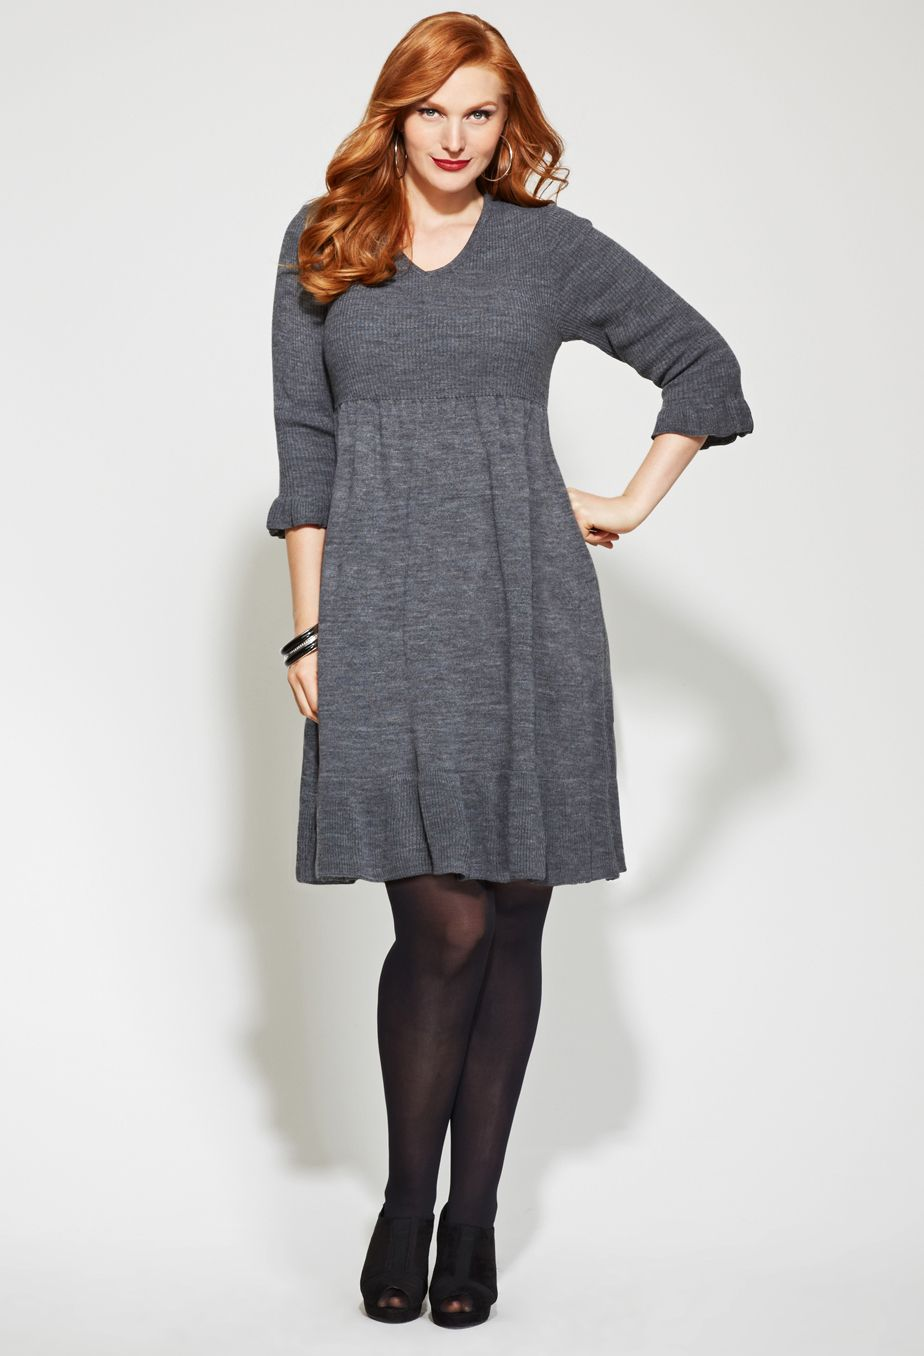 Plus Size Ruffle Hem Sweater Dress | Plus Size Sweater Dresses ...